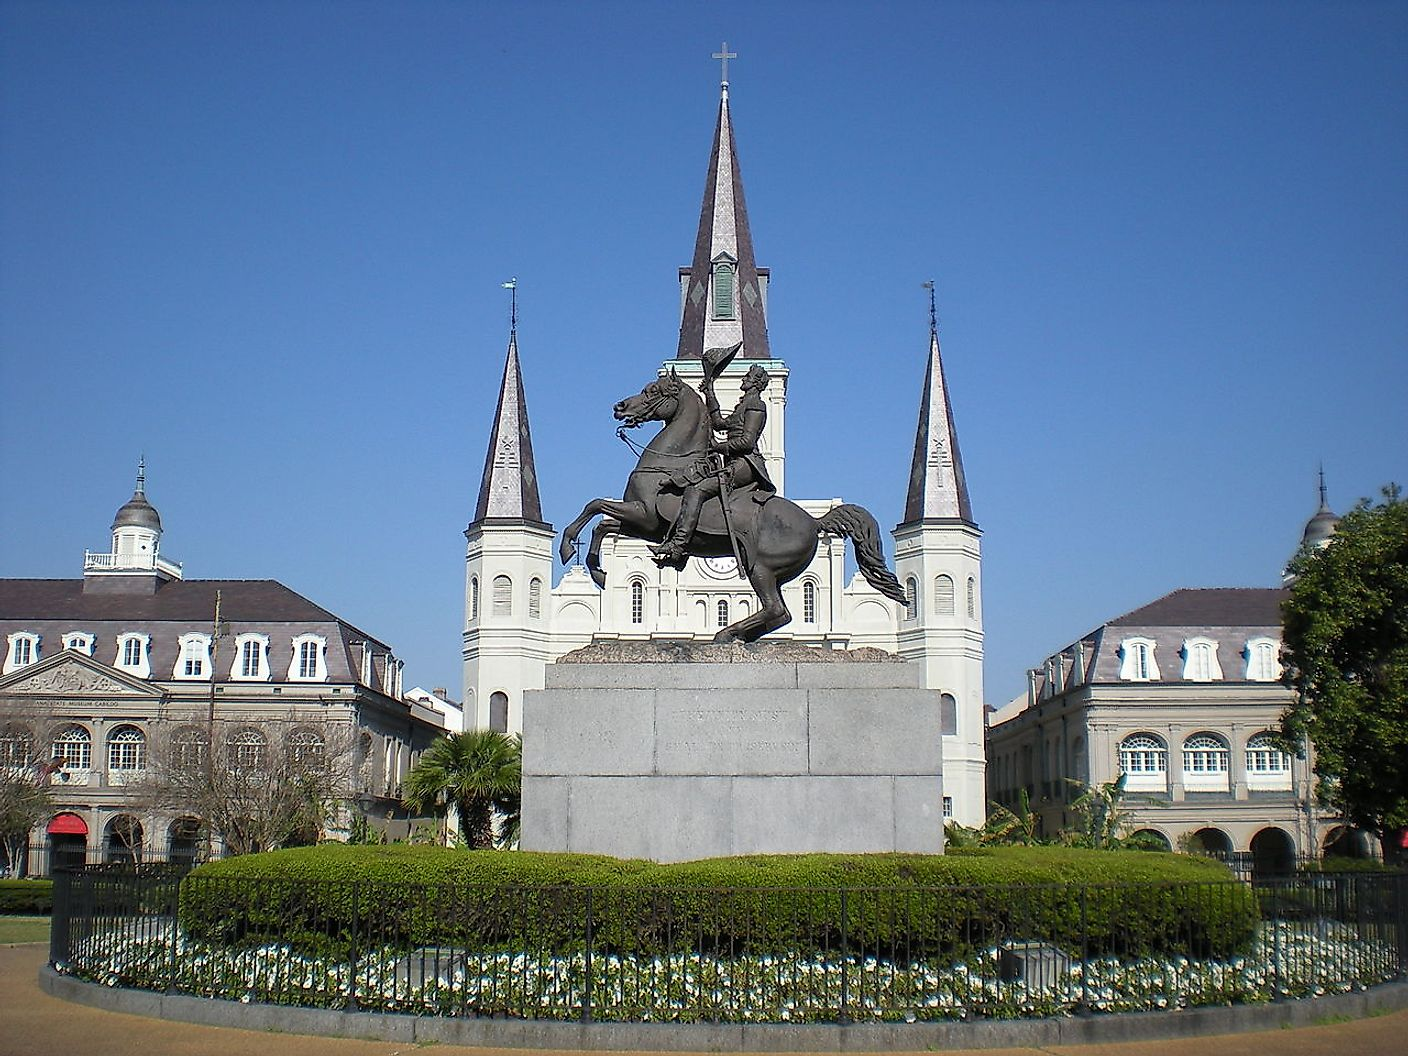 Jackson Square - New Orleans. Image credit: Sami99tr/Wikimedia.org